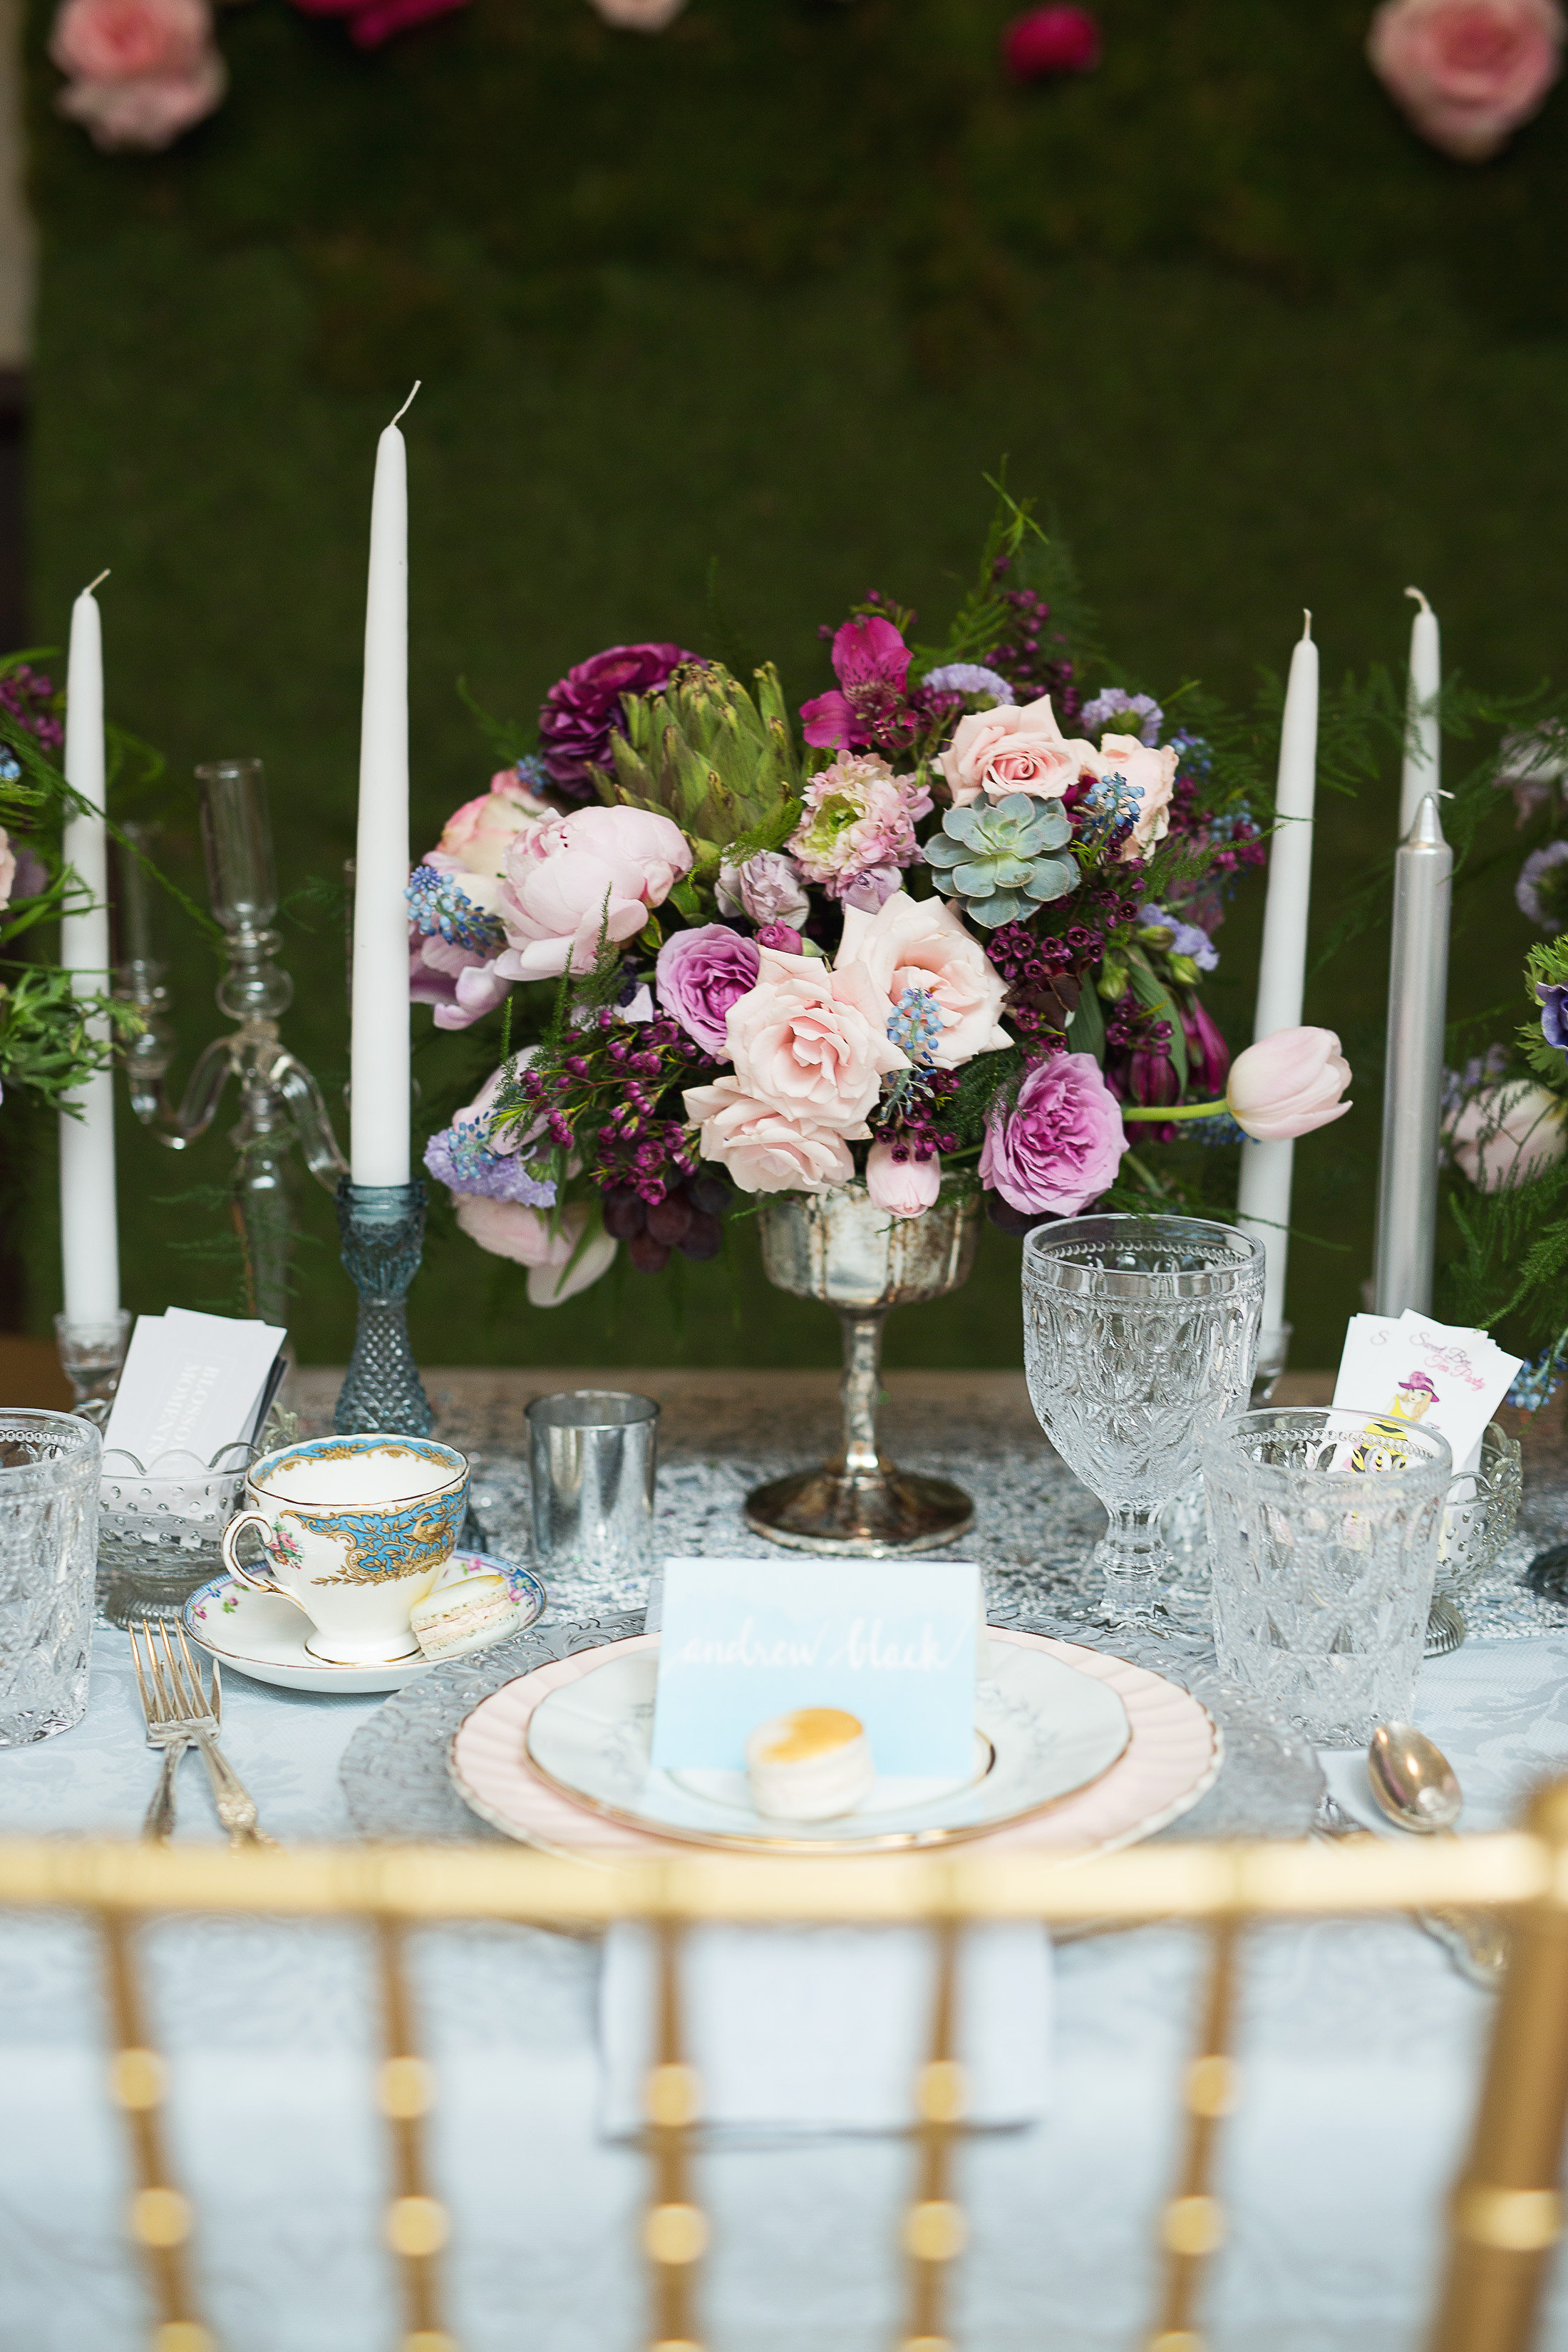 Phoebe Lo Events - Toronto Event Planner and Floral Designer 017.jpg